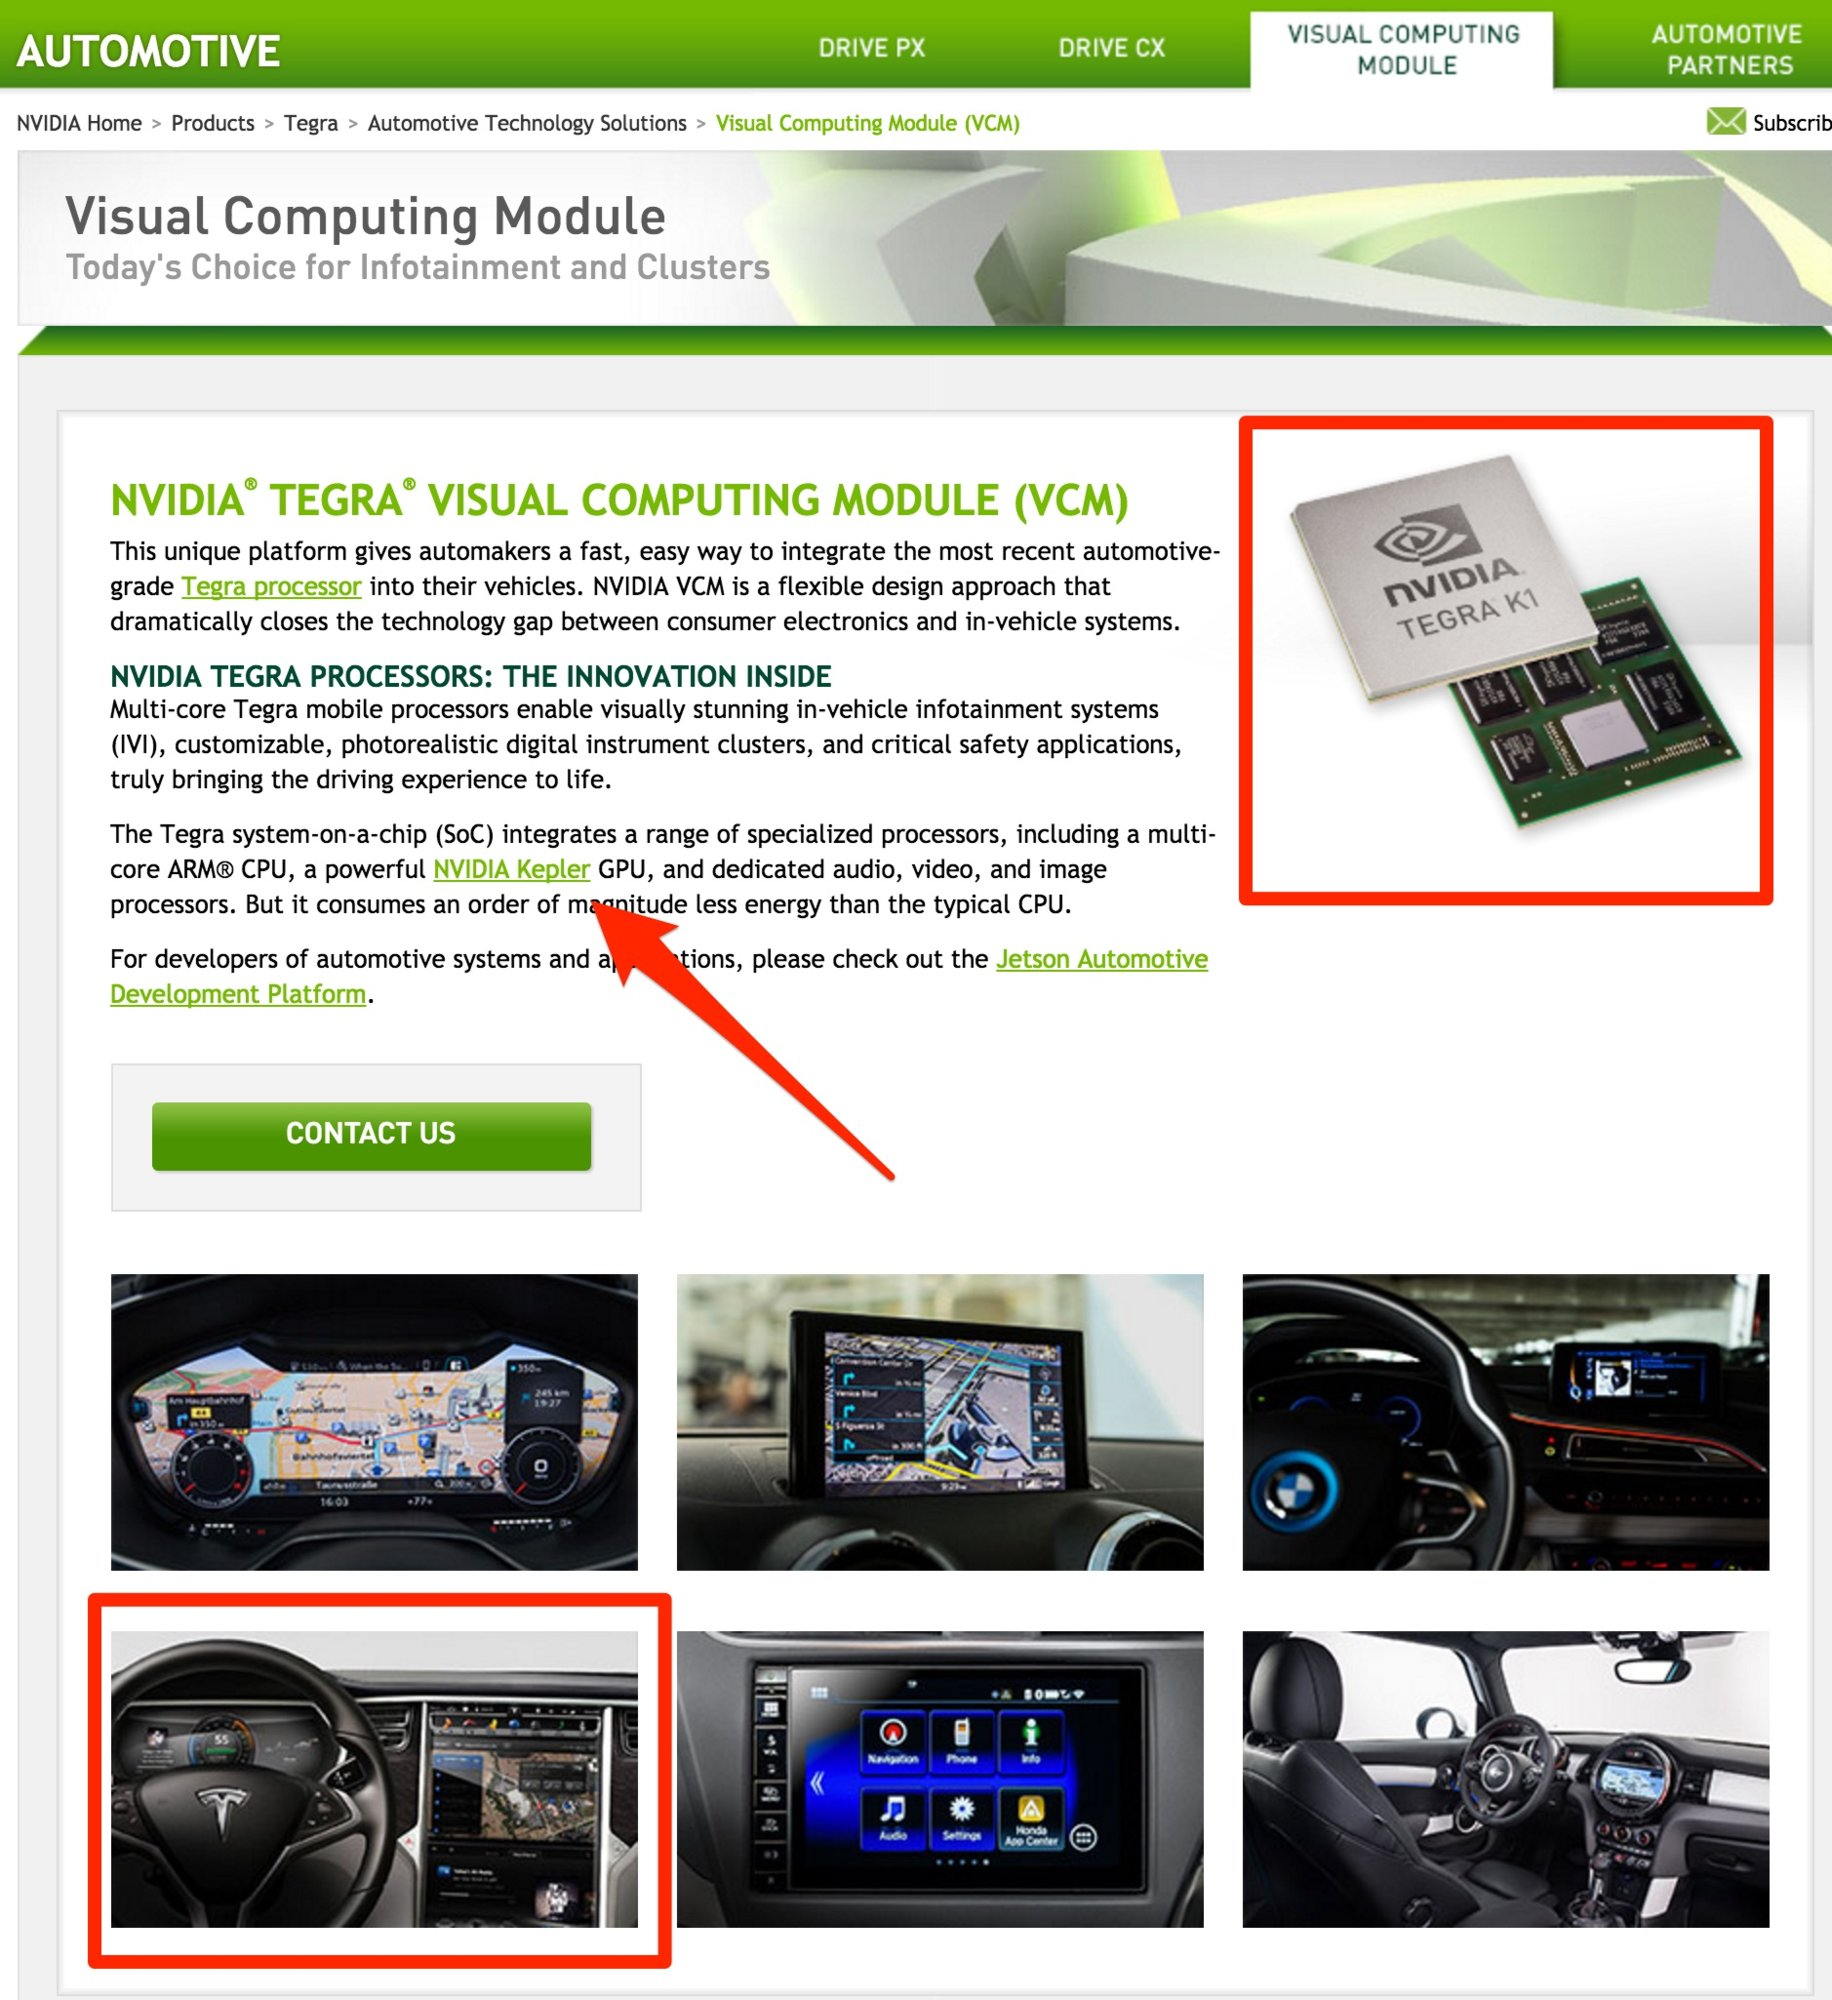 Visual_Computing_Module__VCM__from_NVIDIA_Tegra___NVIDIA.jpg